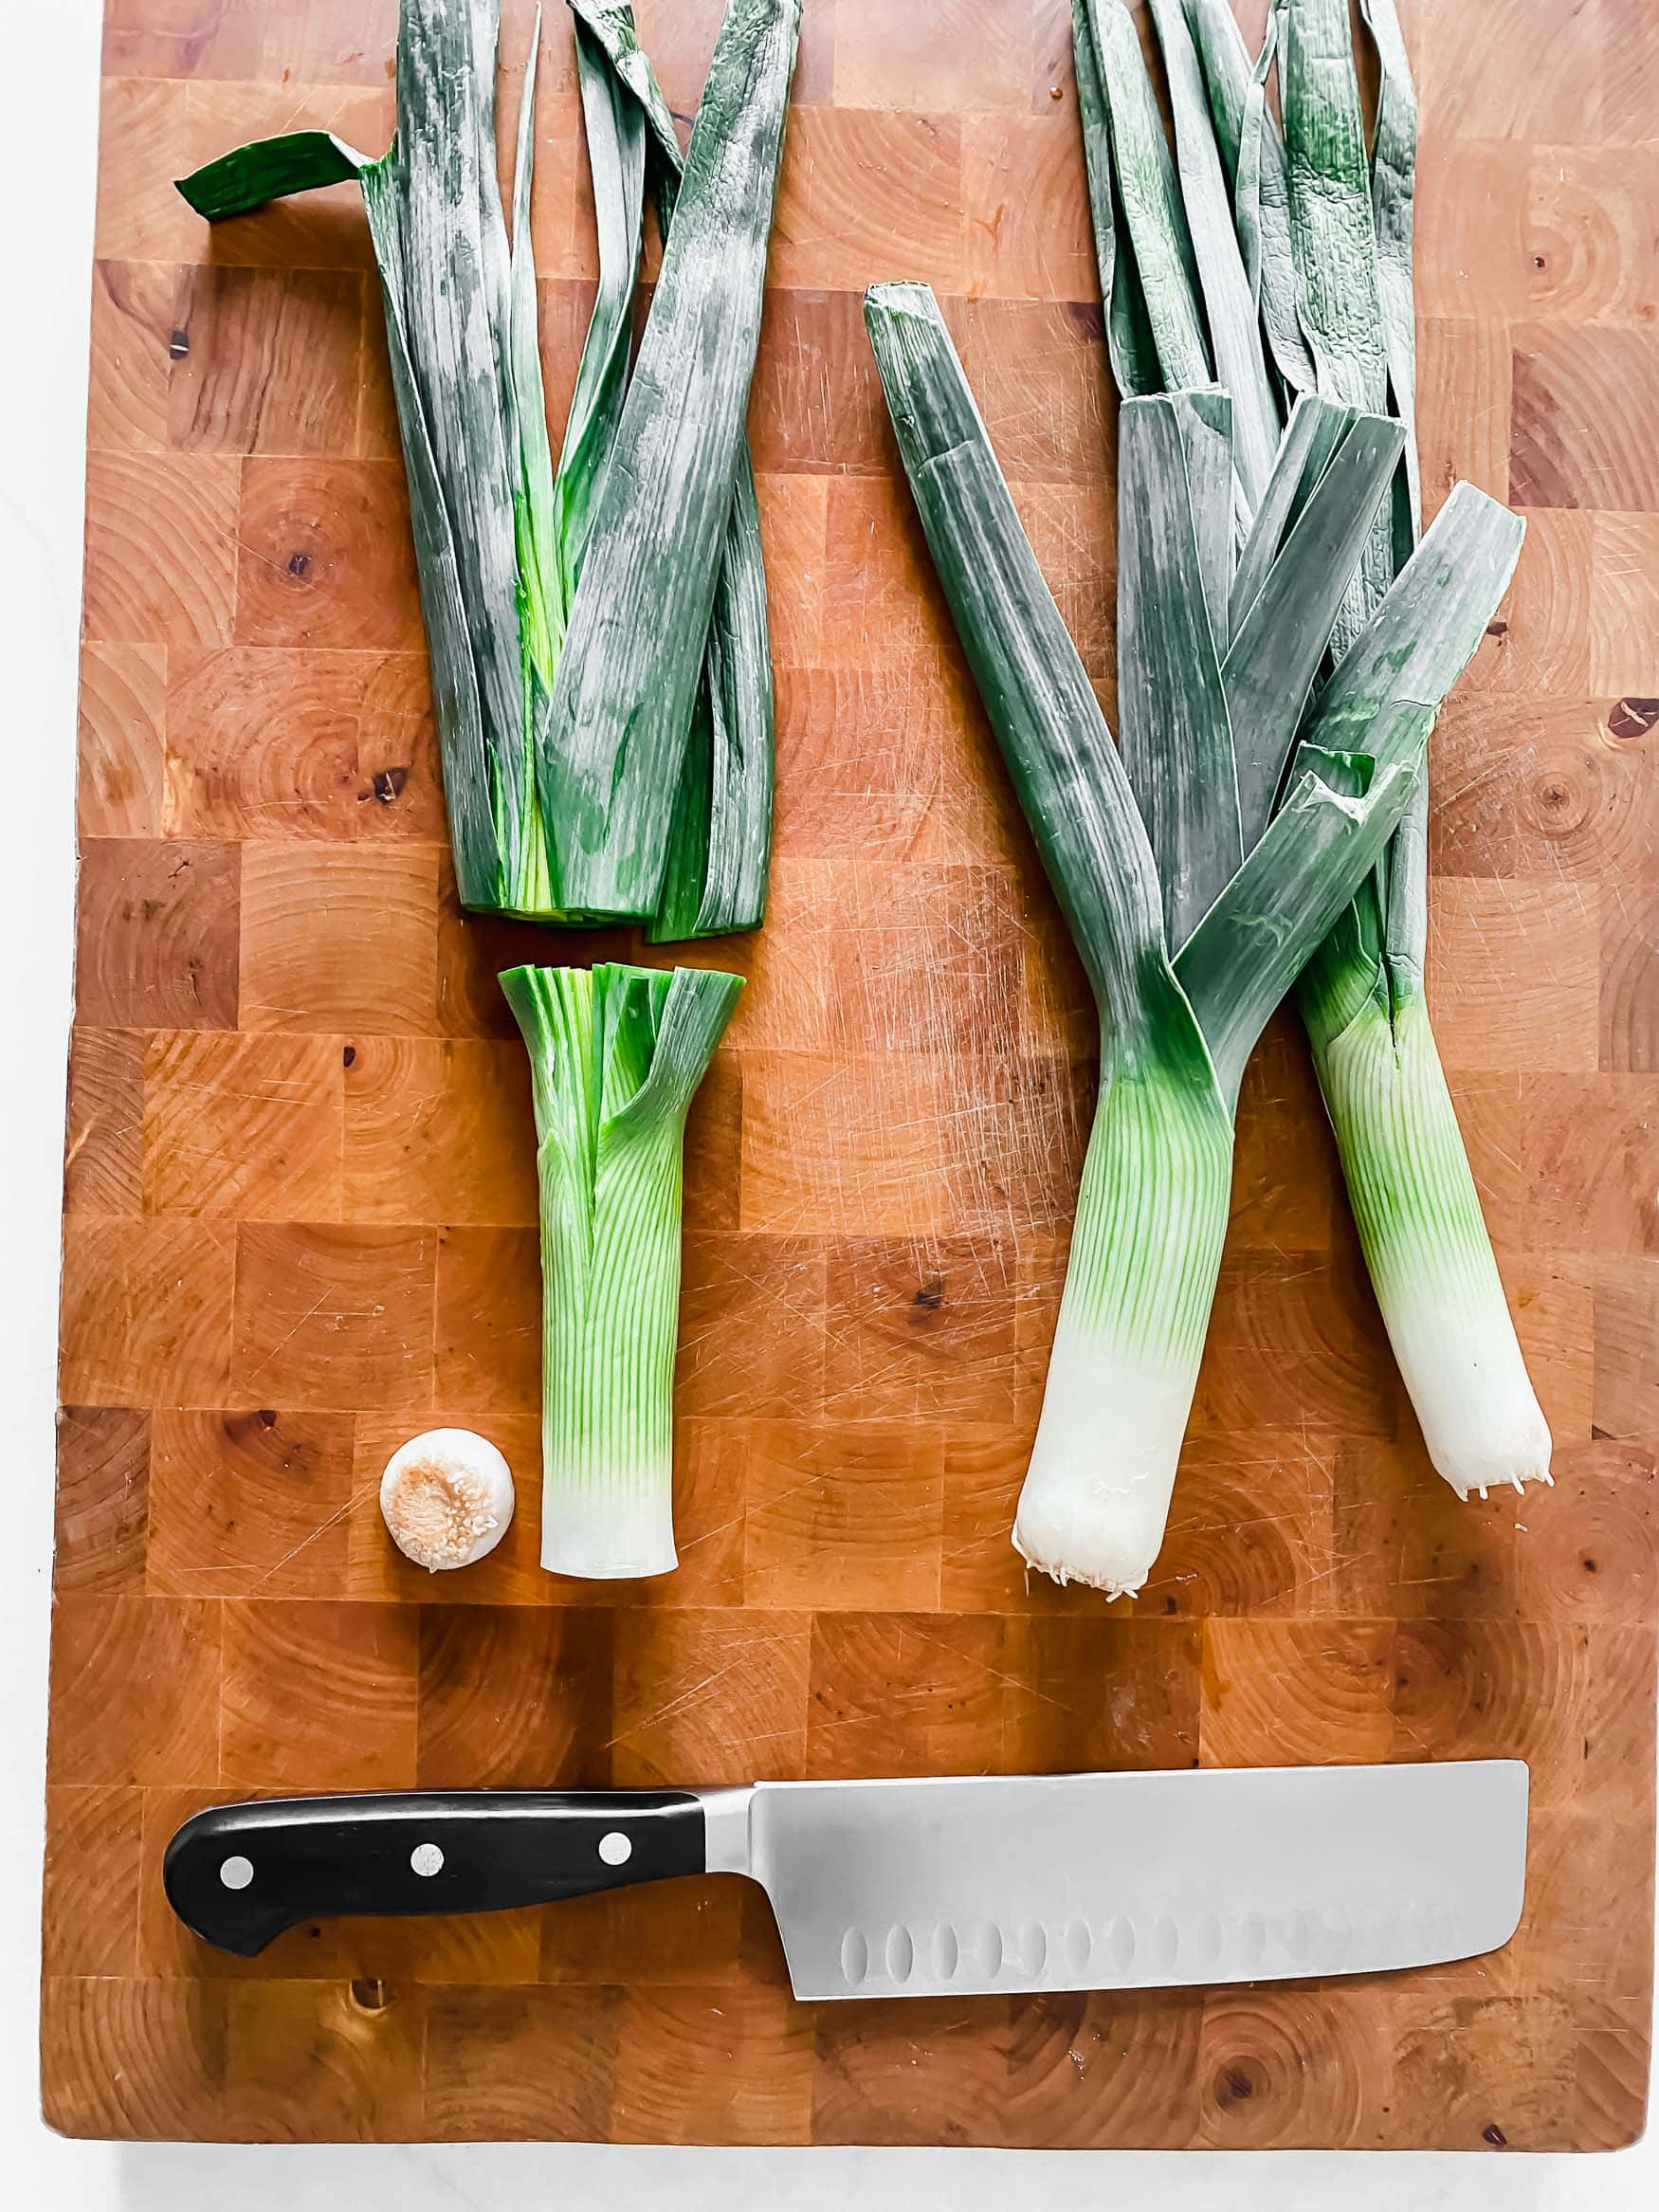 A photo of two leeks sitting side by side on a wooden cutting board. The top of one of the leeks has been cut off and a knife is laying on the cutting board next to them.